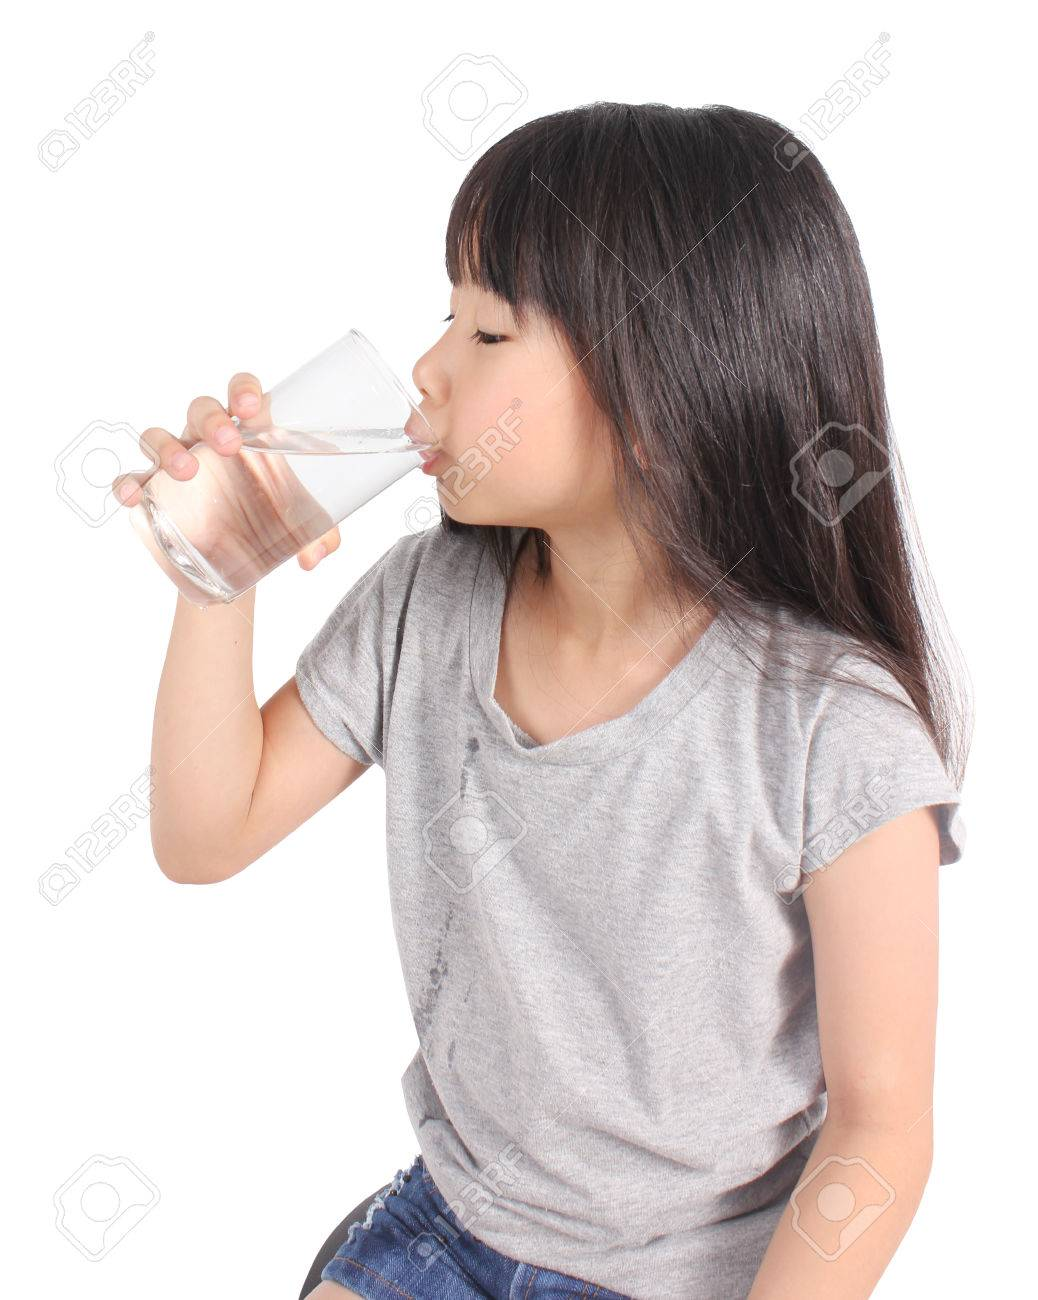 Young little girl drinking water. - 51687436